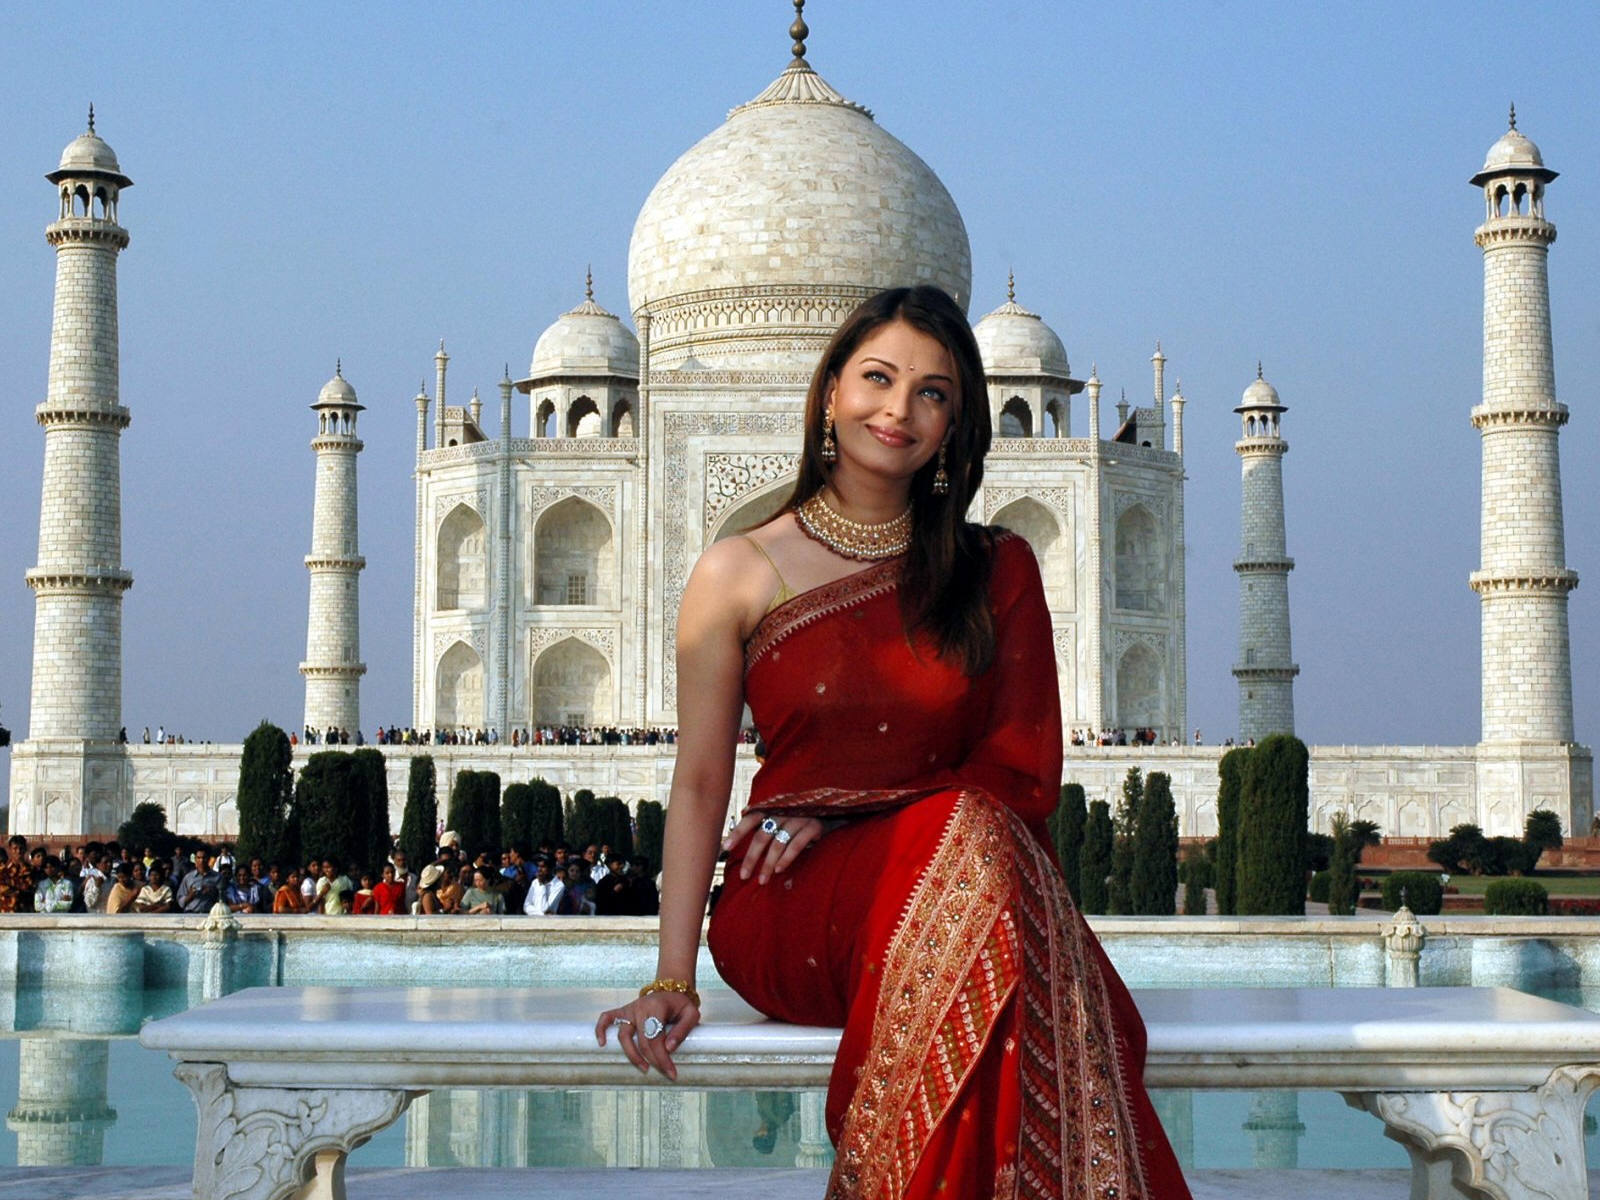 India Aishwarya Rai at the Taj Mahal